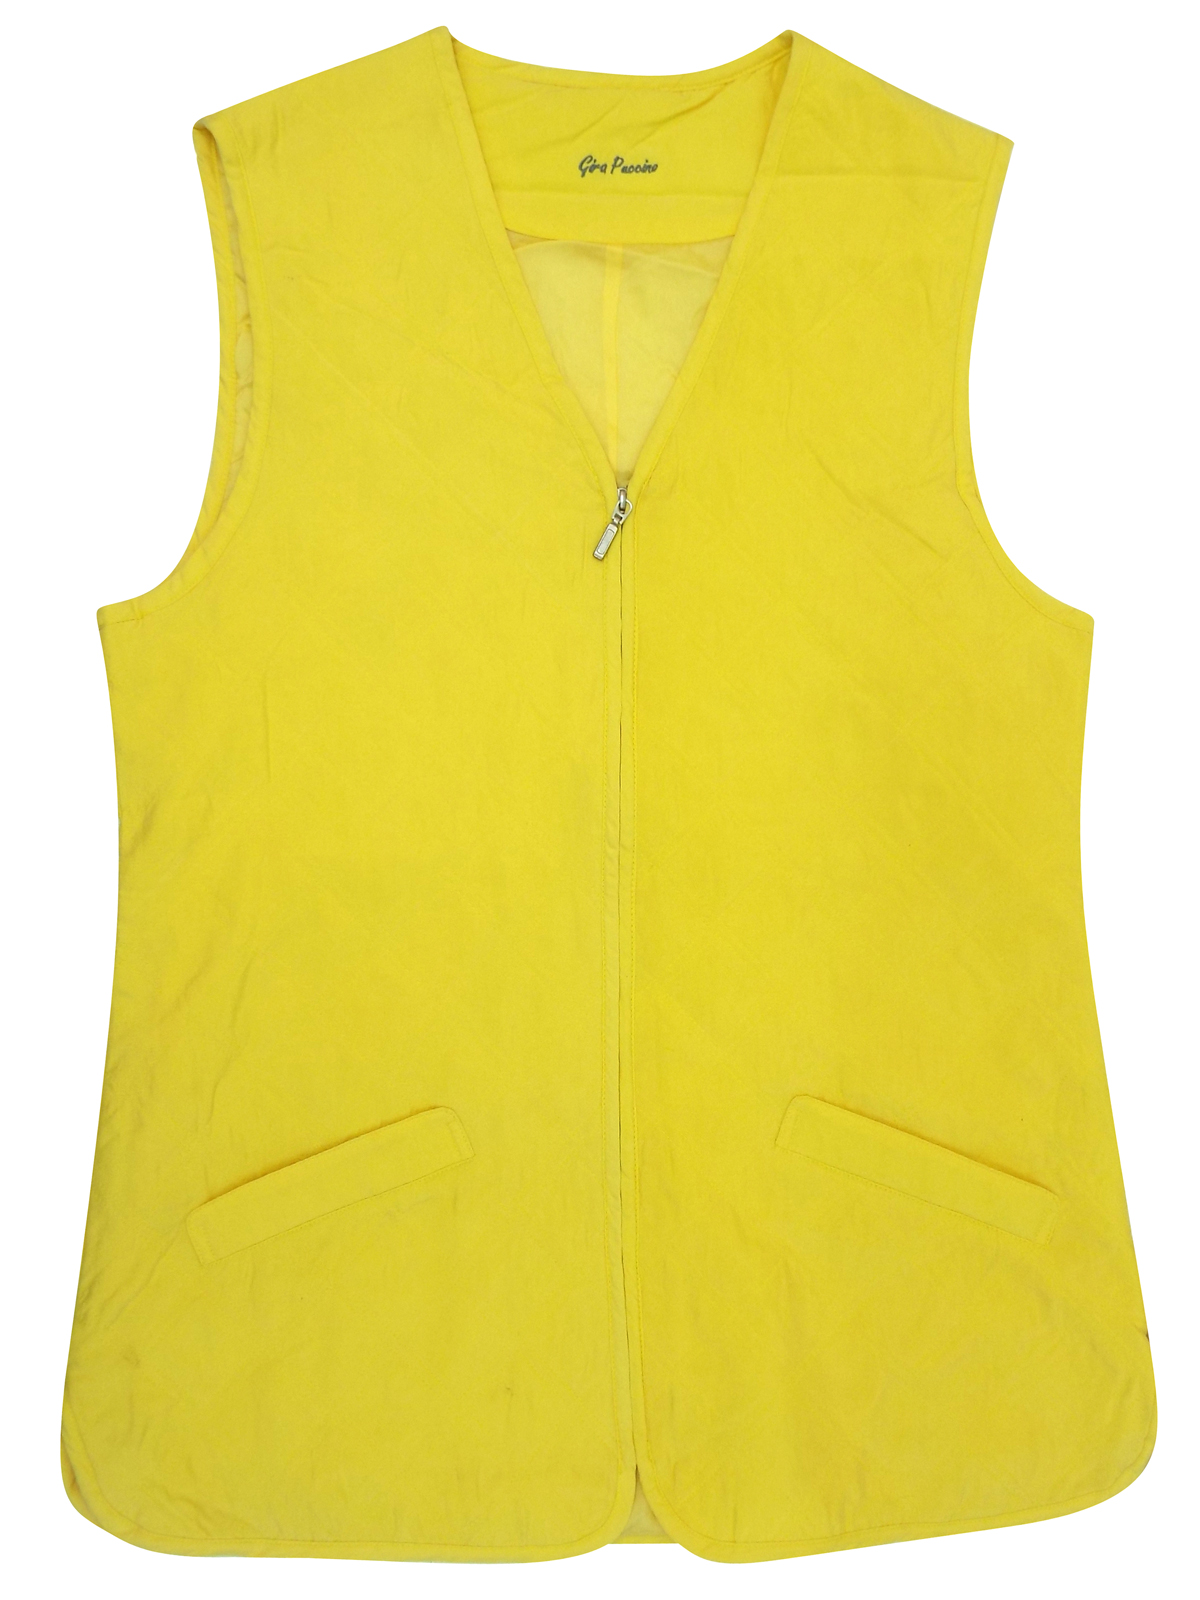 Gira Paccino YELLOW Pure Silk Sleeveless Zip Through Gilet Jacket - Size 14 to 18